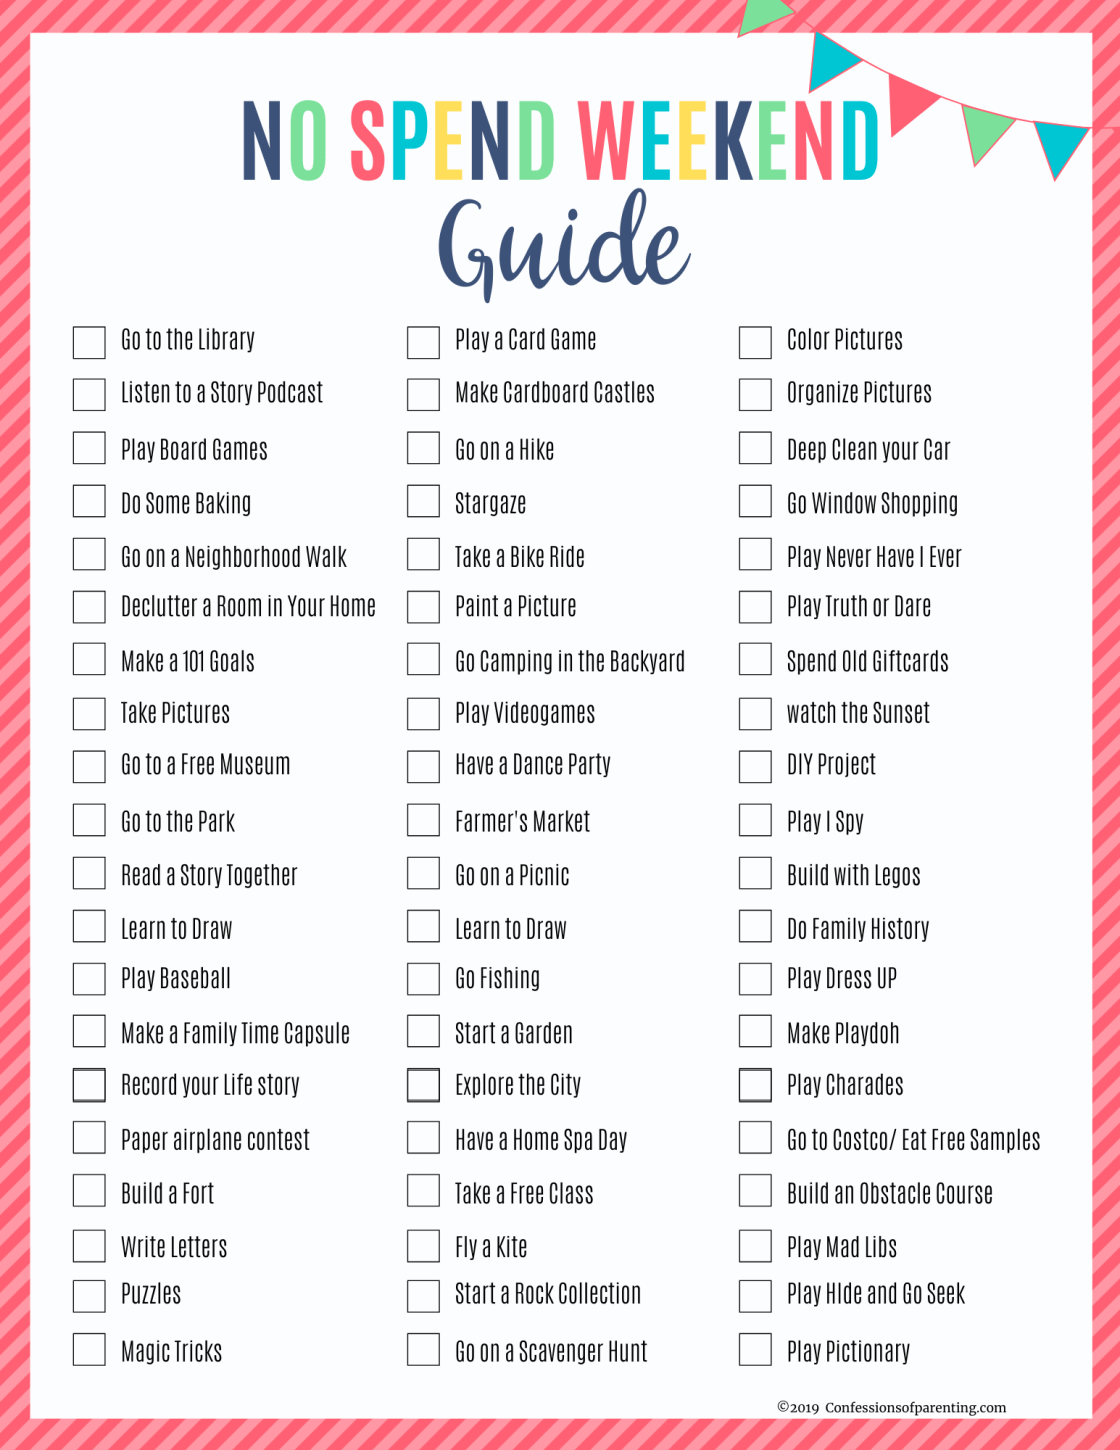 Are you looking to save money while spending time with your family? Check out these no spend weekend family ideas that won't cost a dime!